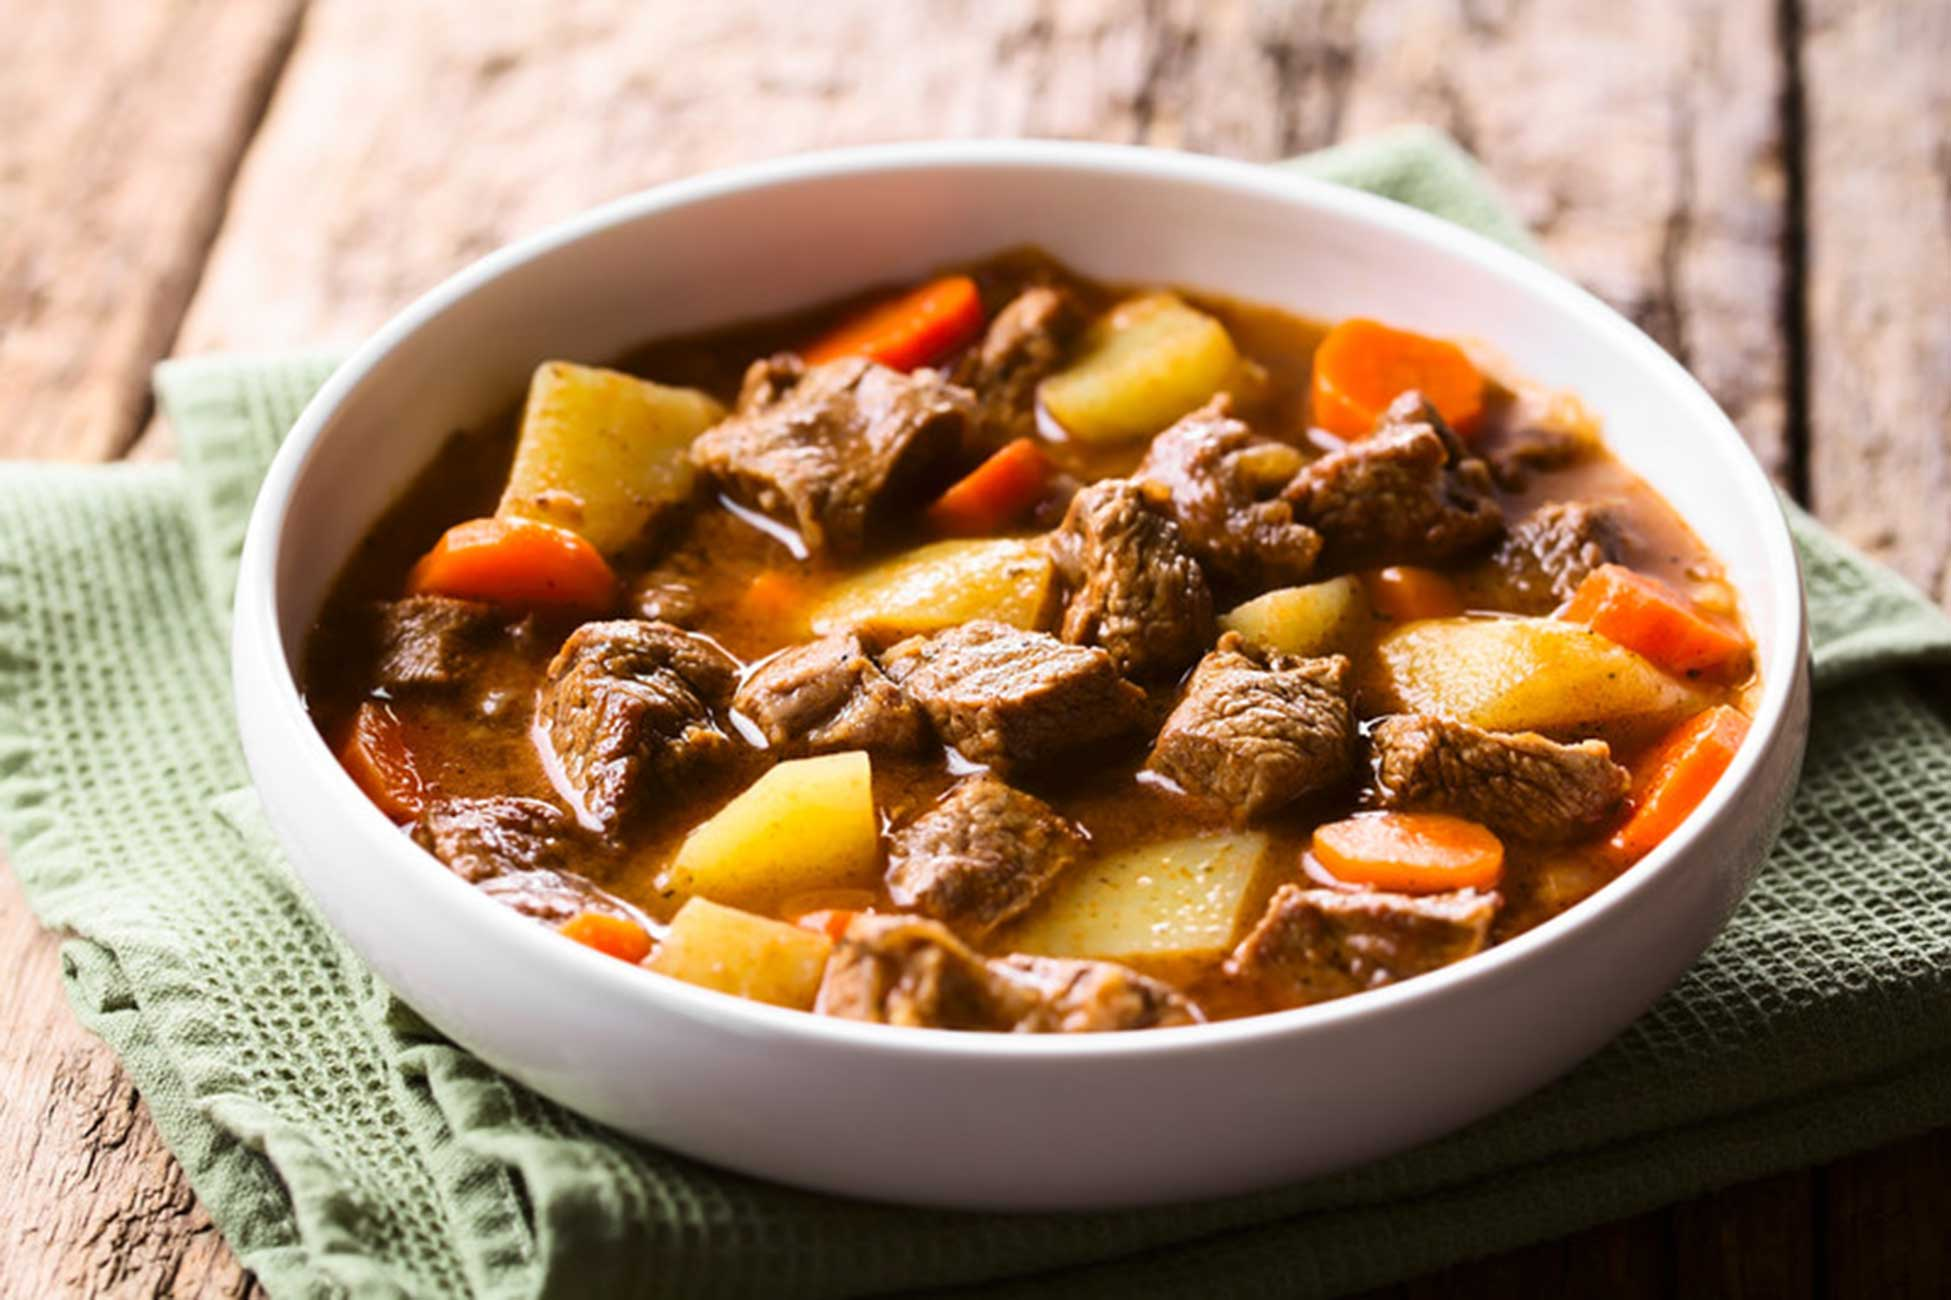 Beef Stew Instant Pot - Slow Cooker Recipe - I Need Medic